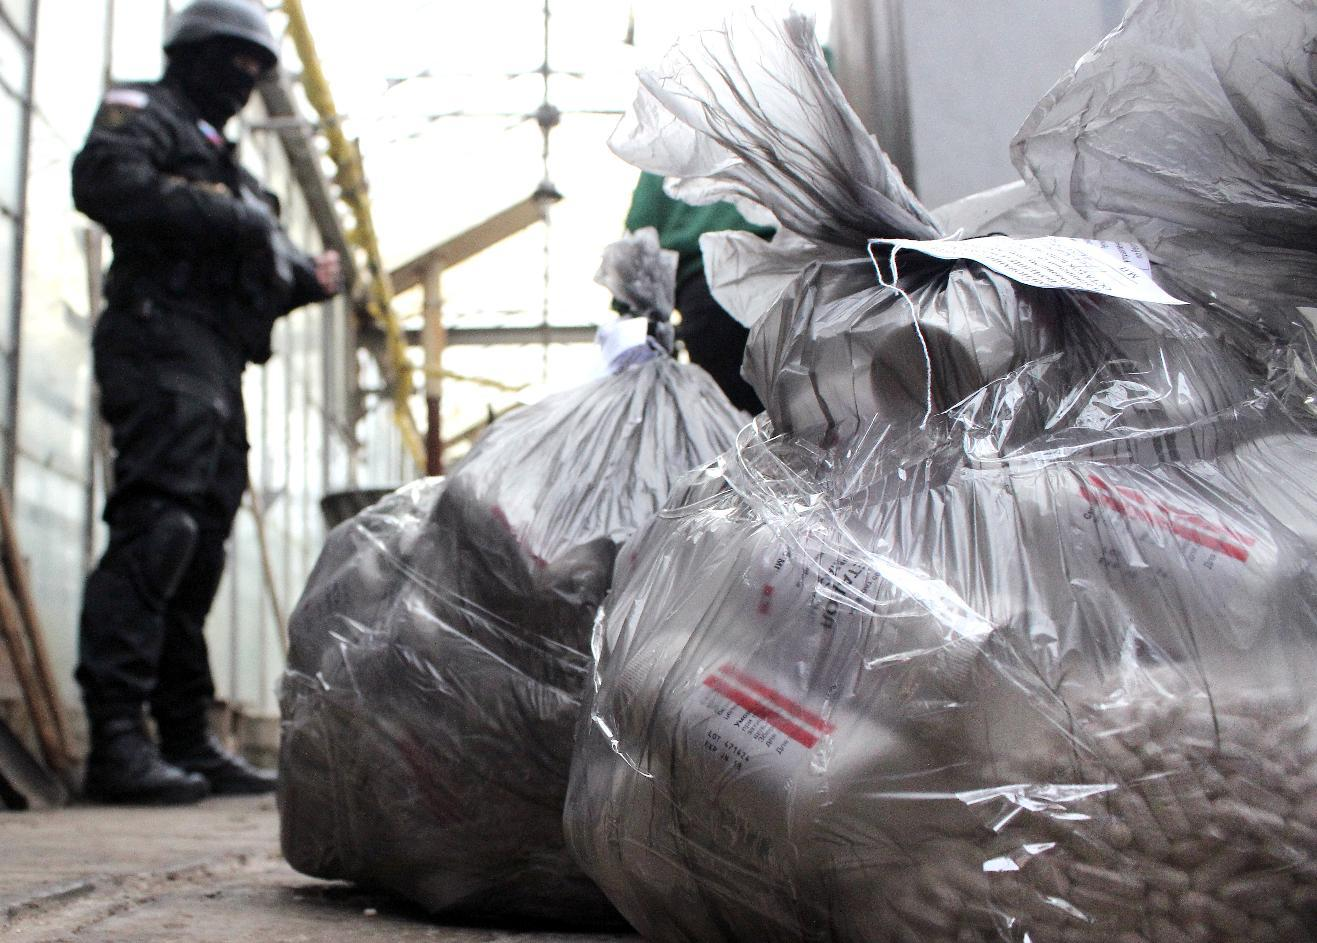 A Russian Federal Drug Control Service officer guards bags of Methadone before burning them during an operation in Simferopol on December 23, 2014 (AFP Photo/Yuri Lashov)